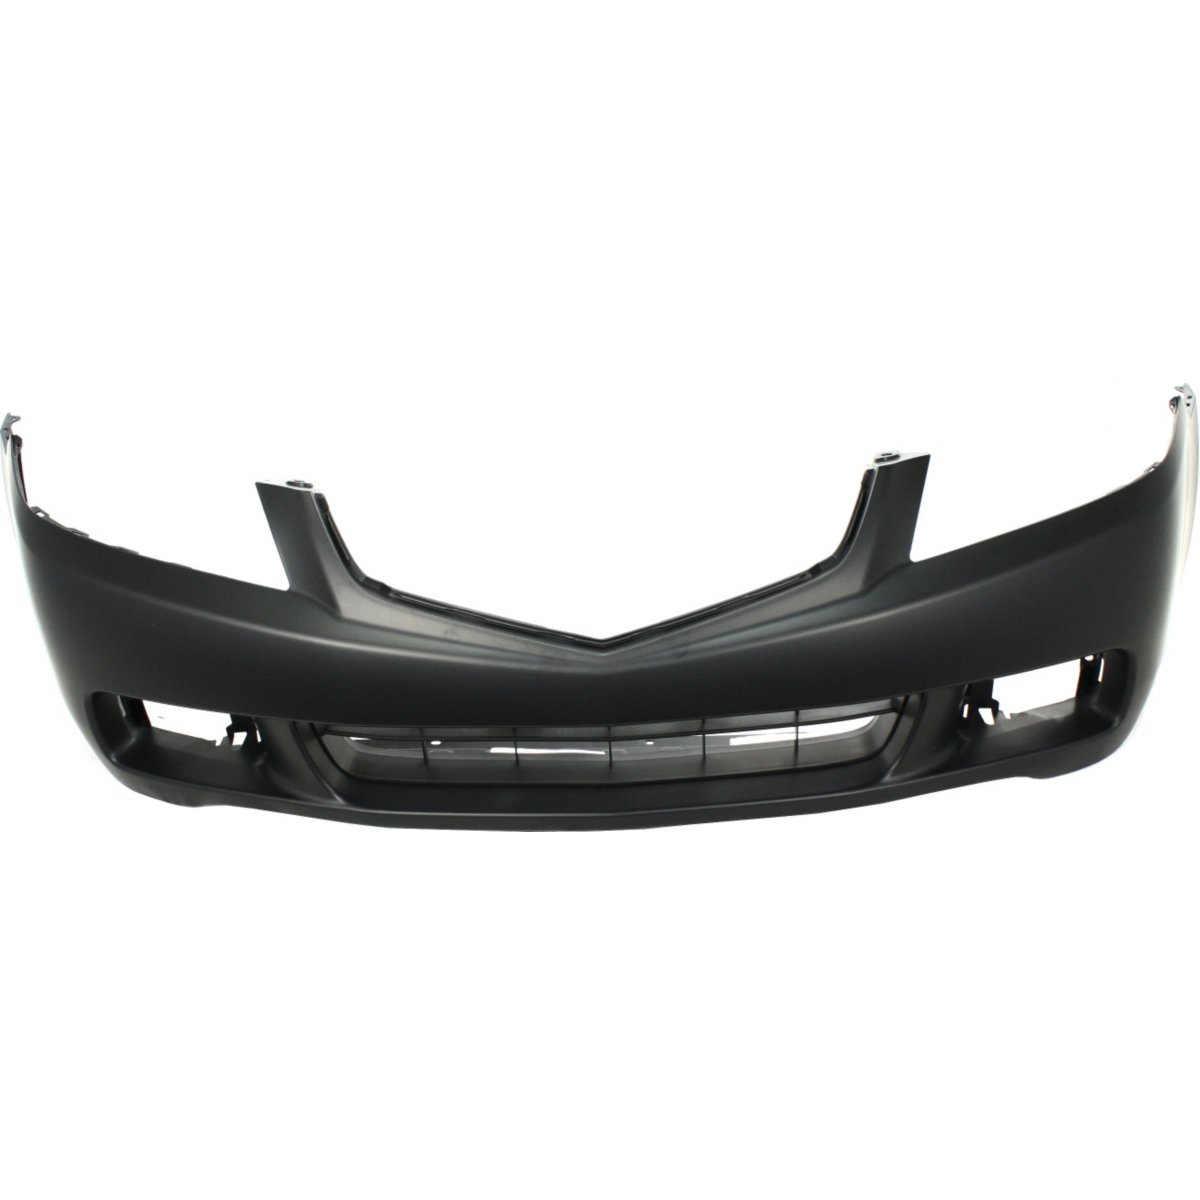 04711SECA90ZZ AC1000145 Front Bumper Cover New Primered